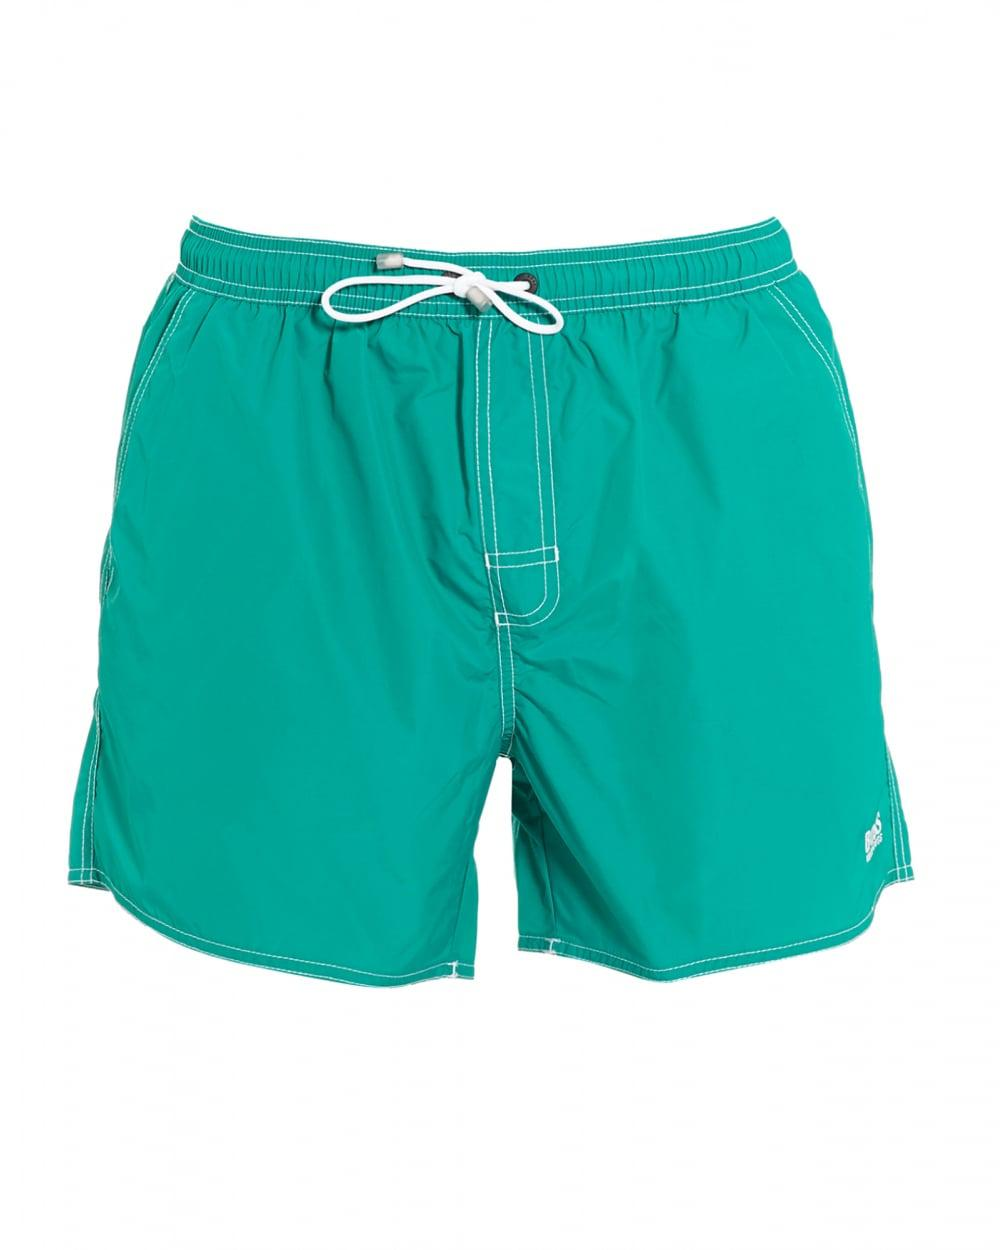 a864df74bf BOSS Lobster Short Aqua Blue Swim Shorts in Blue for Men - Lyst